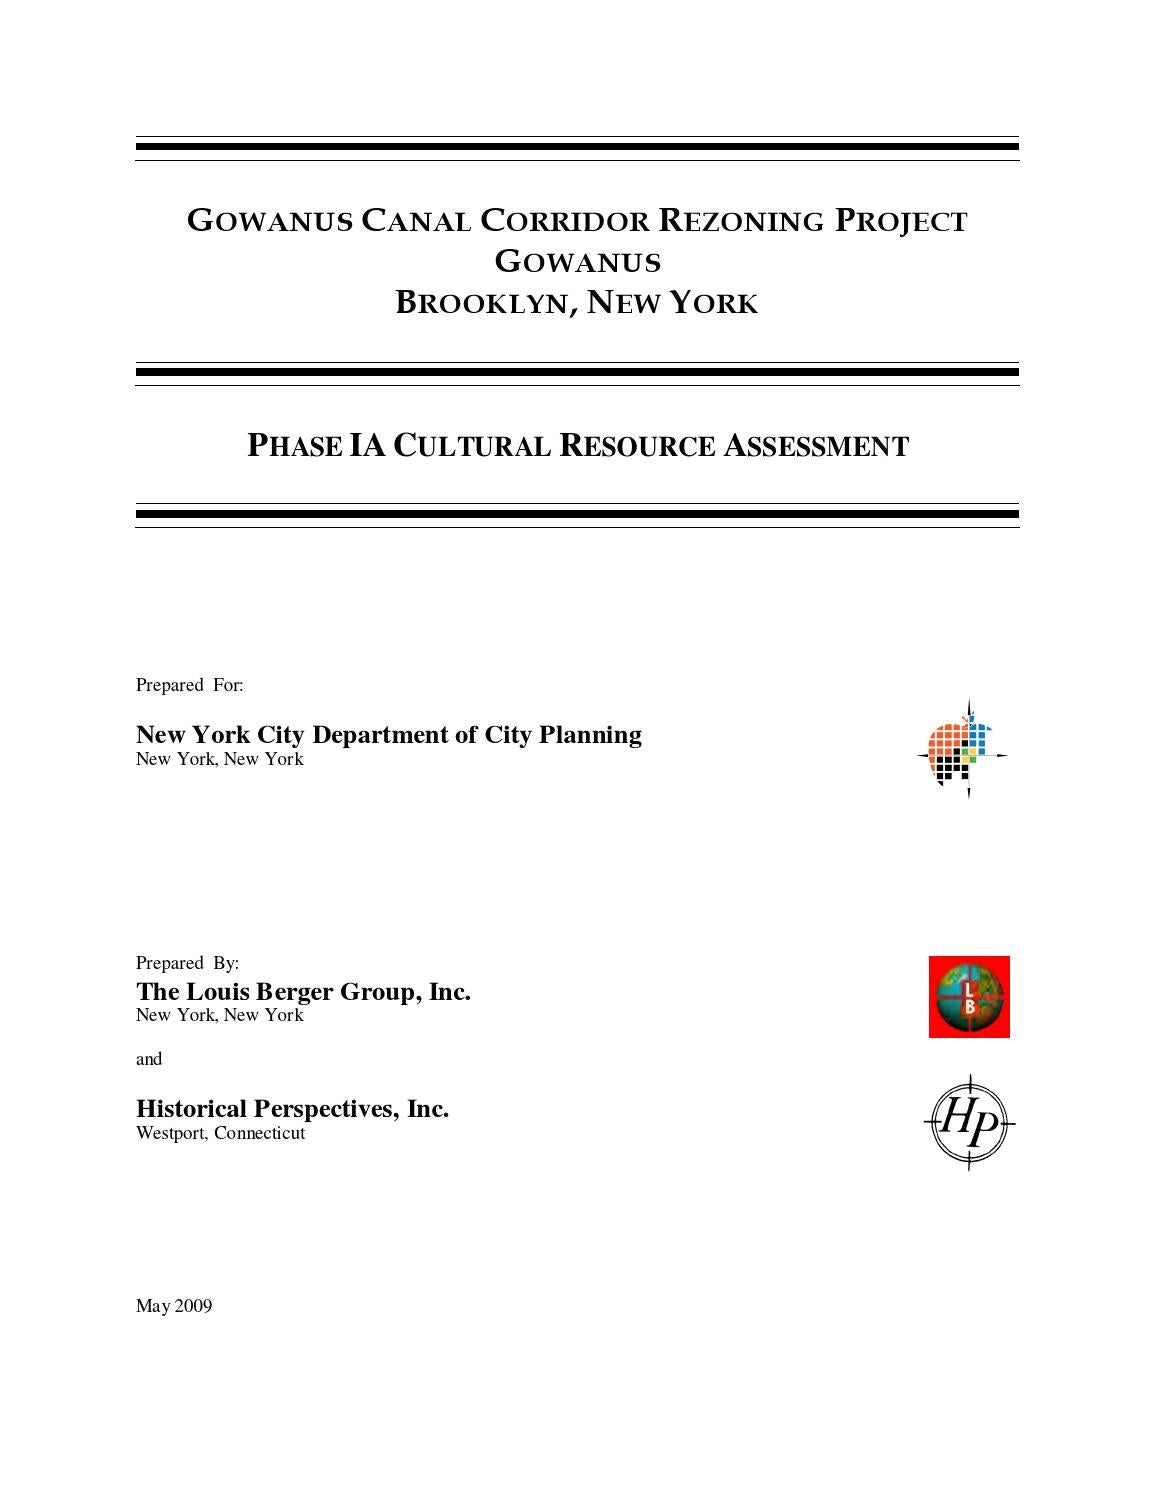 2009 Gowanus Rezoning Corridor Historical Assessment by Hall